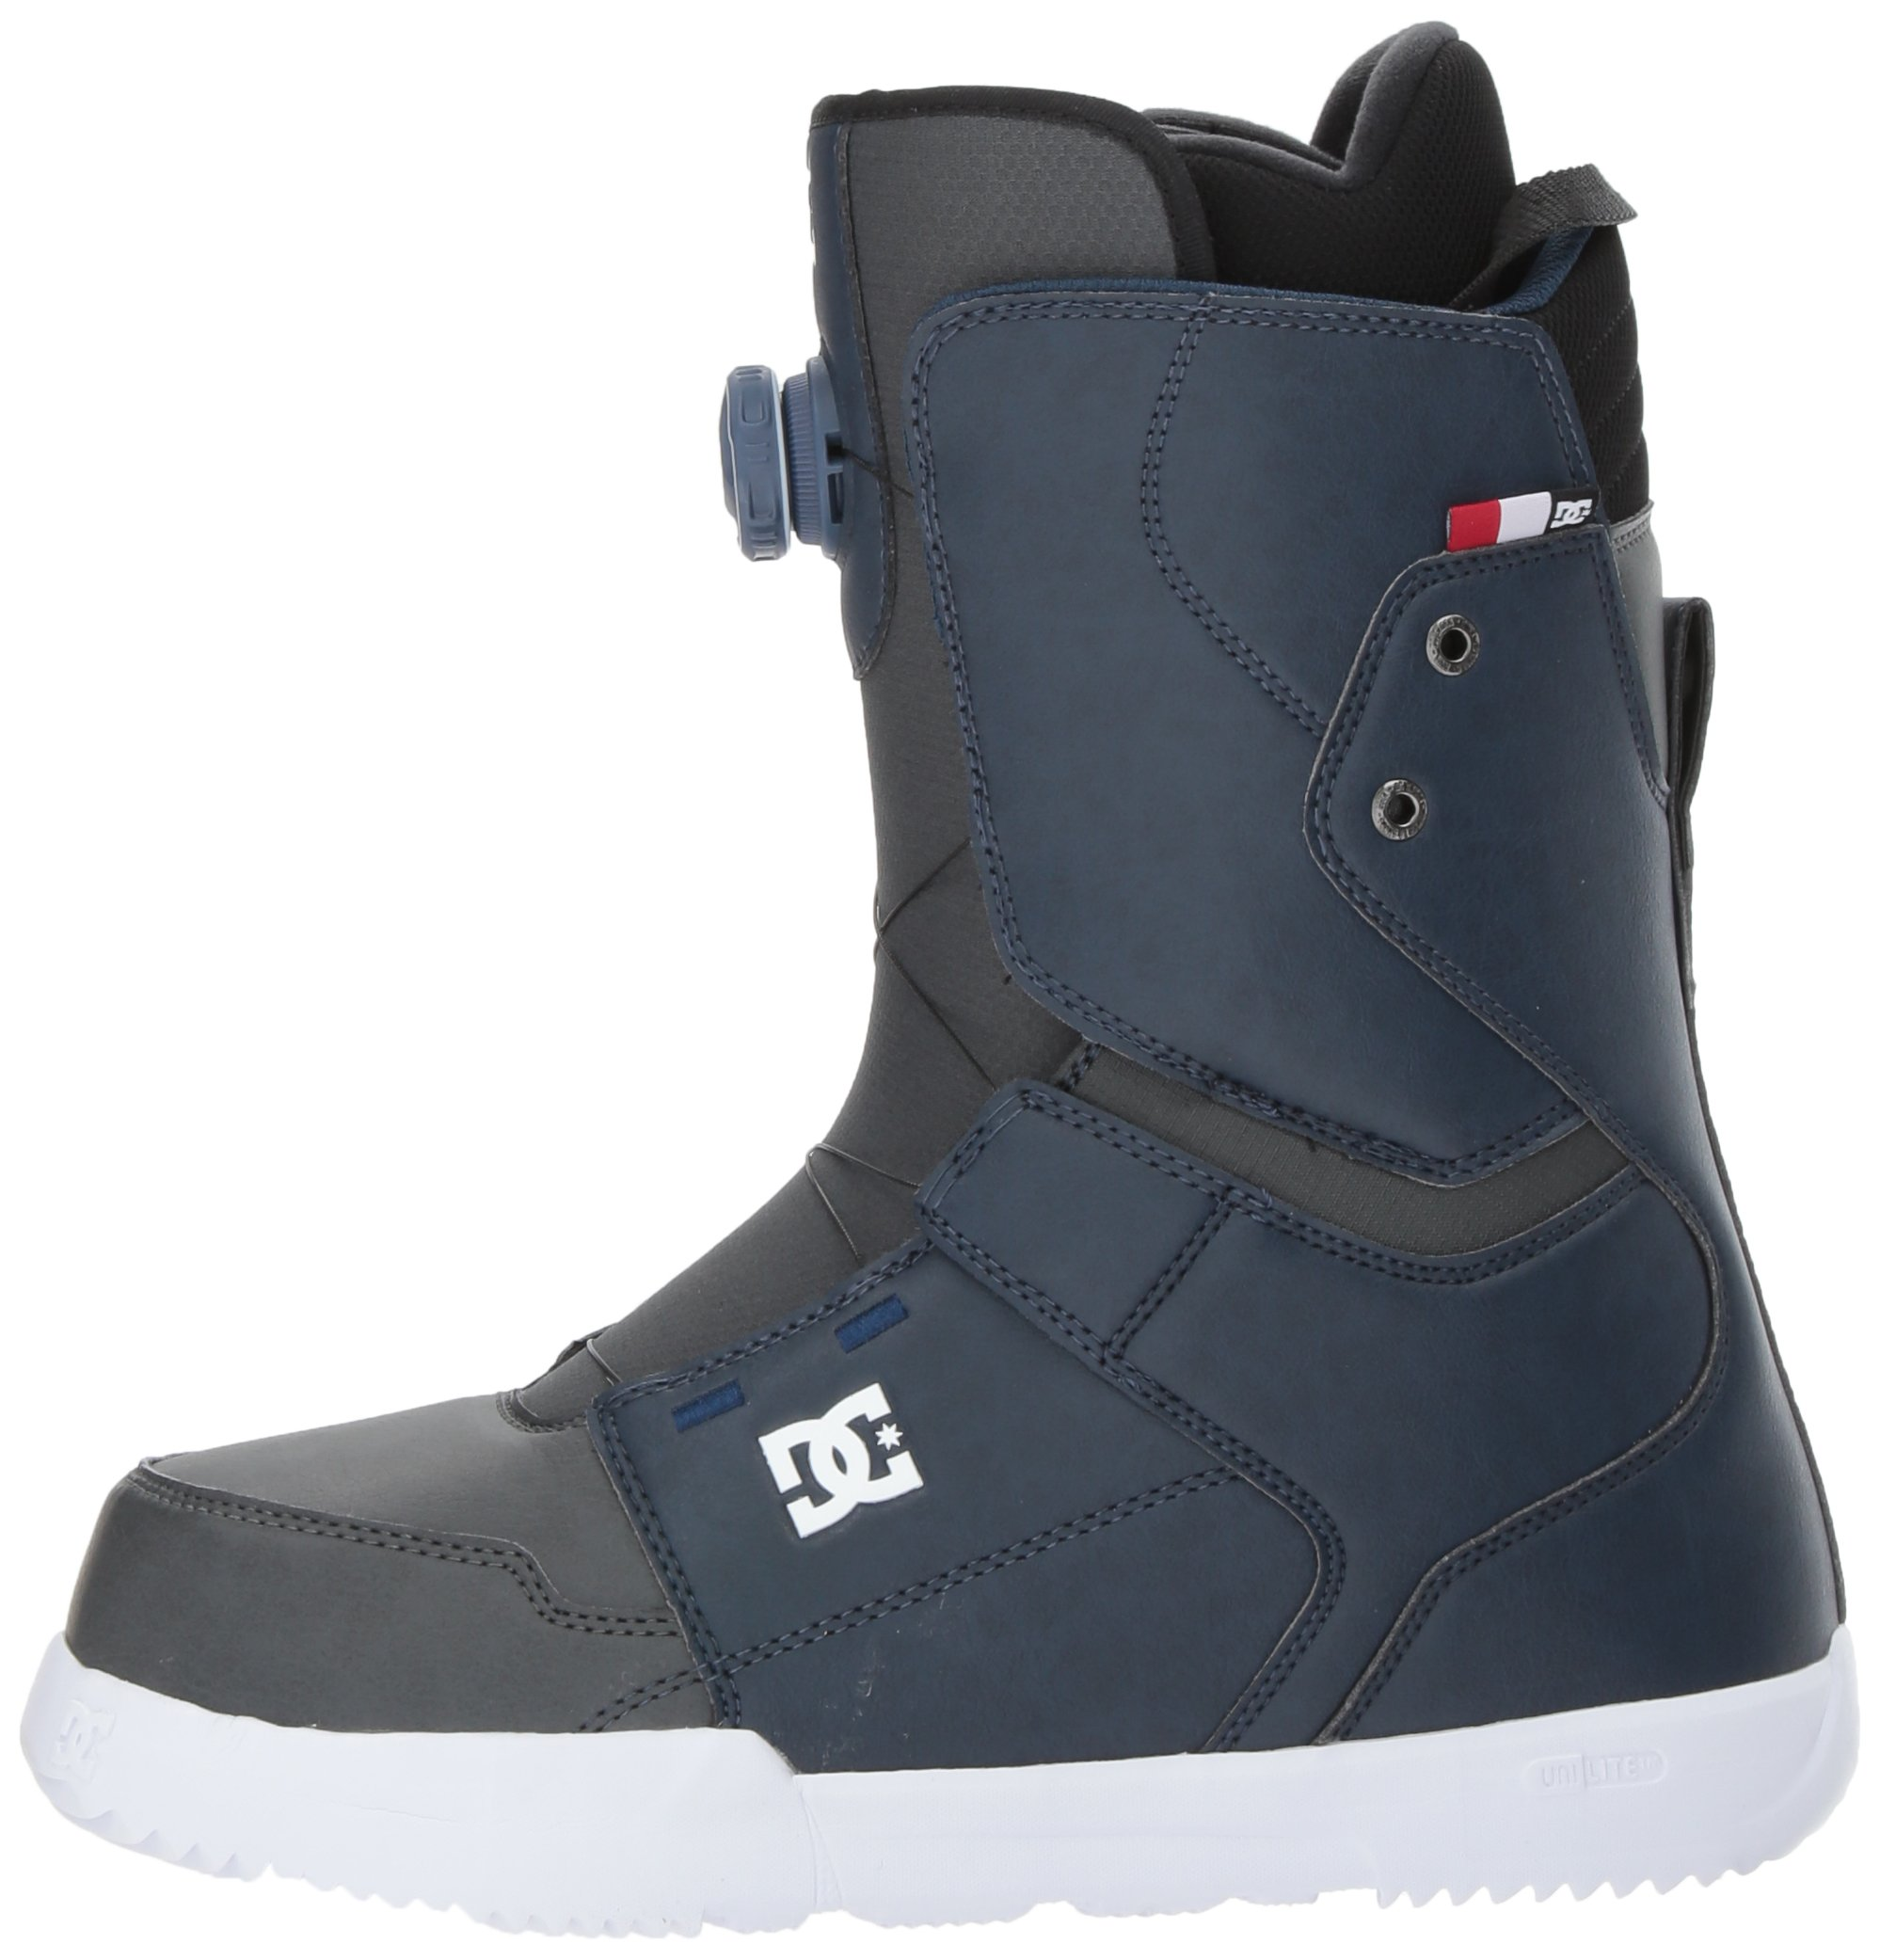 DC Men's Scout Boa Snowboard Boots, Insignia Blue, 7.5 by DC (Image #5)